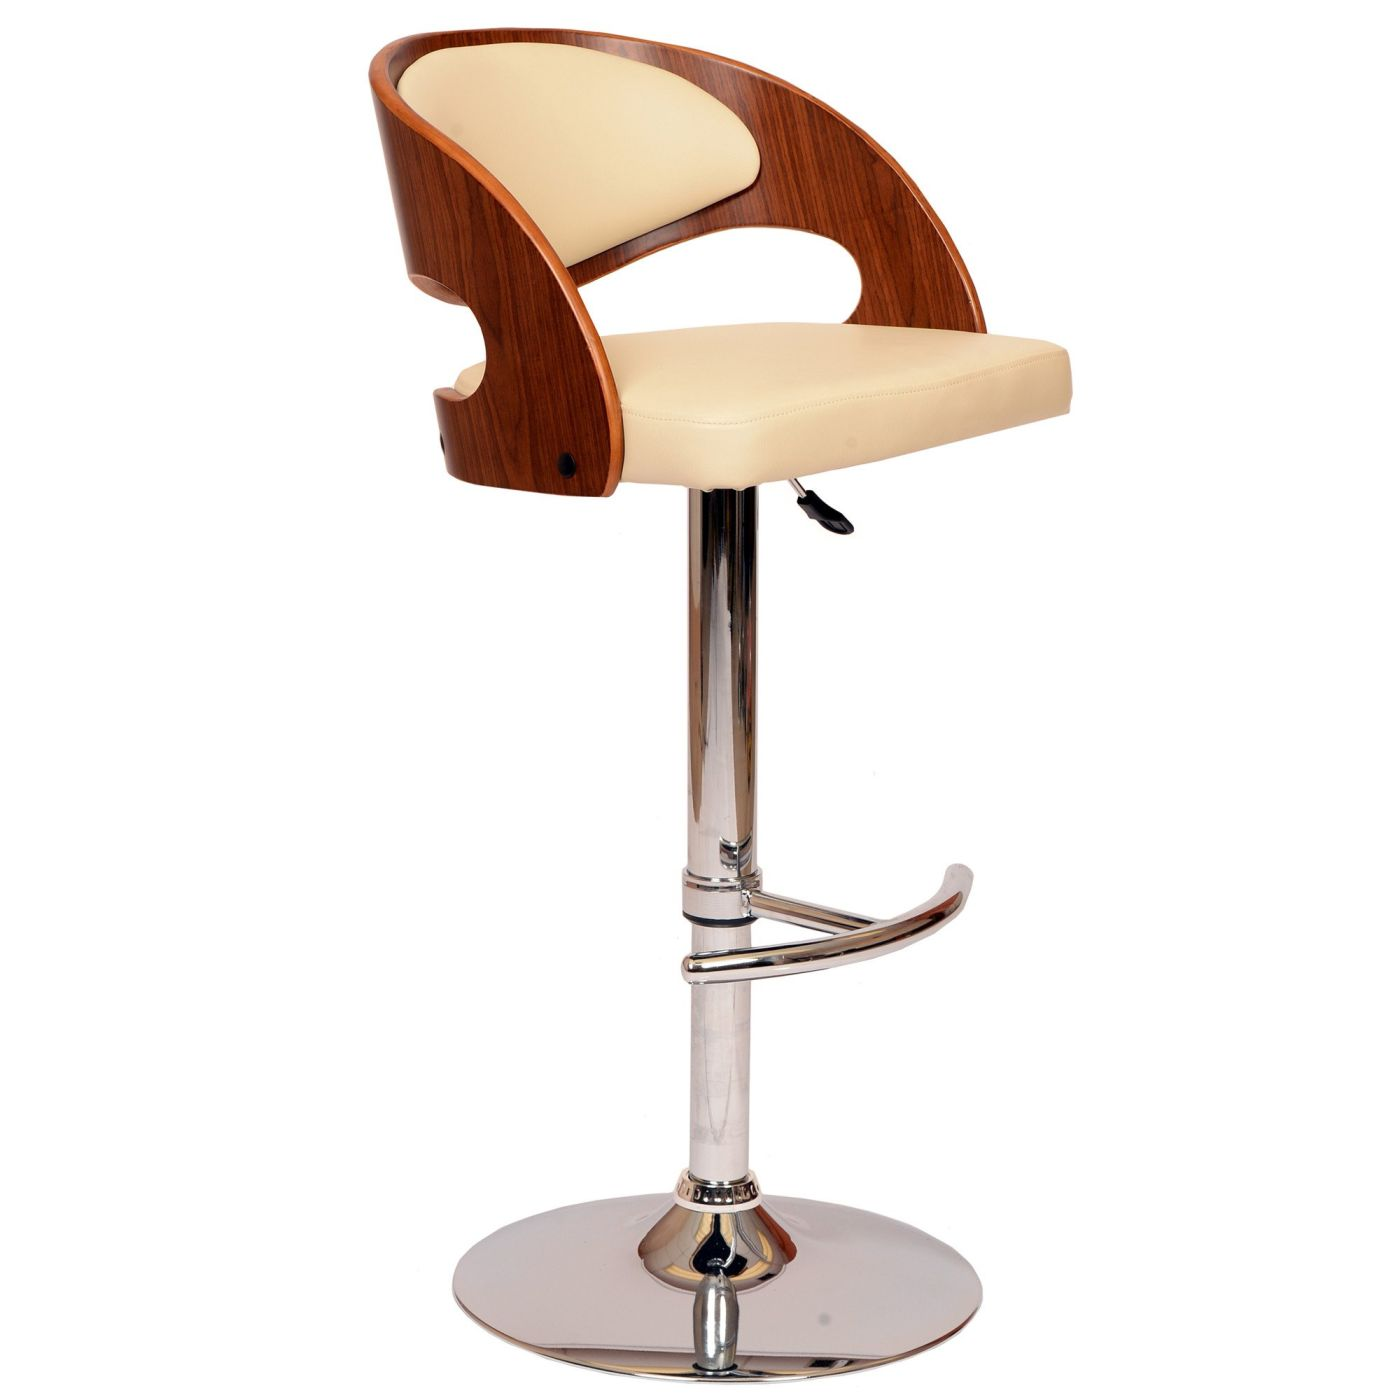 Excellent Buy Armen Living Lcmaswbacrwa Malibu Swivel Barstool In Cream Pu Walnut And Chrome Base At Contemporary Furniture Warehouse Ncnpc Chair Design For Home Ncnpcorg